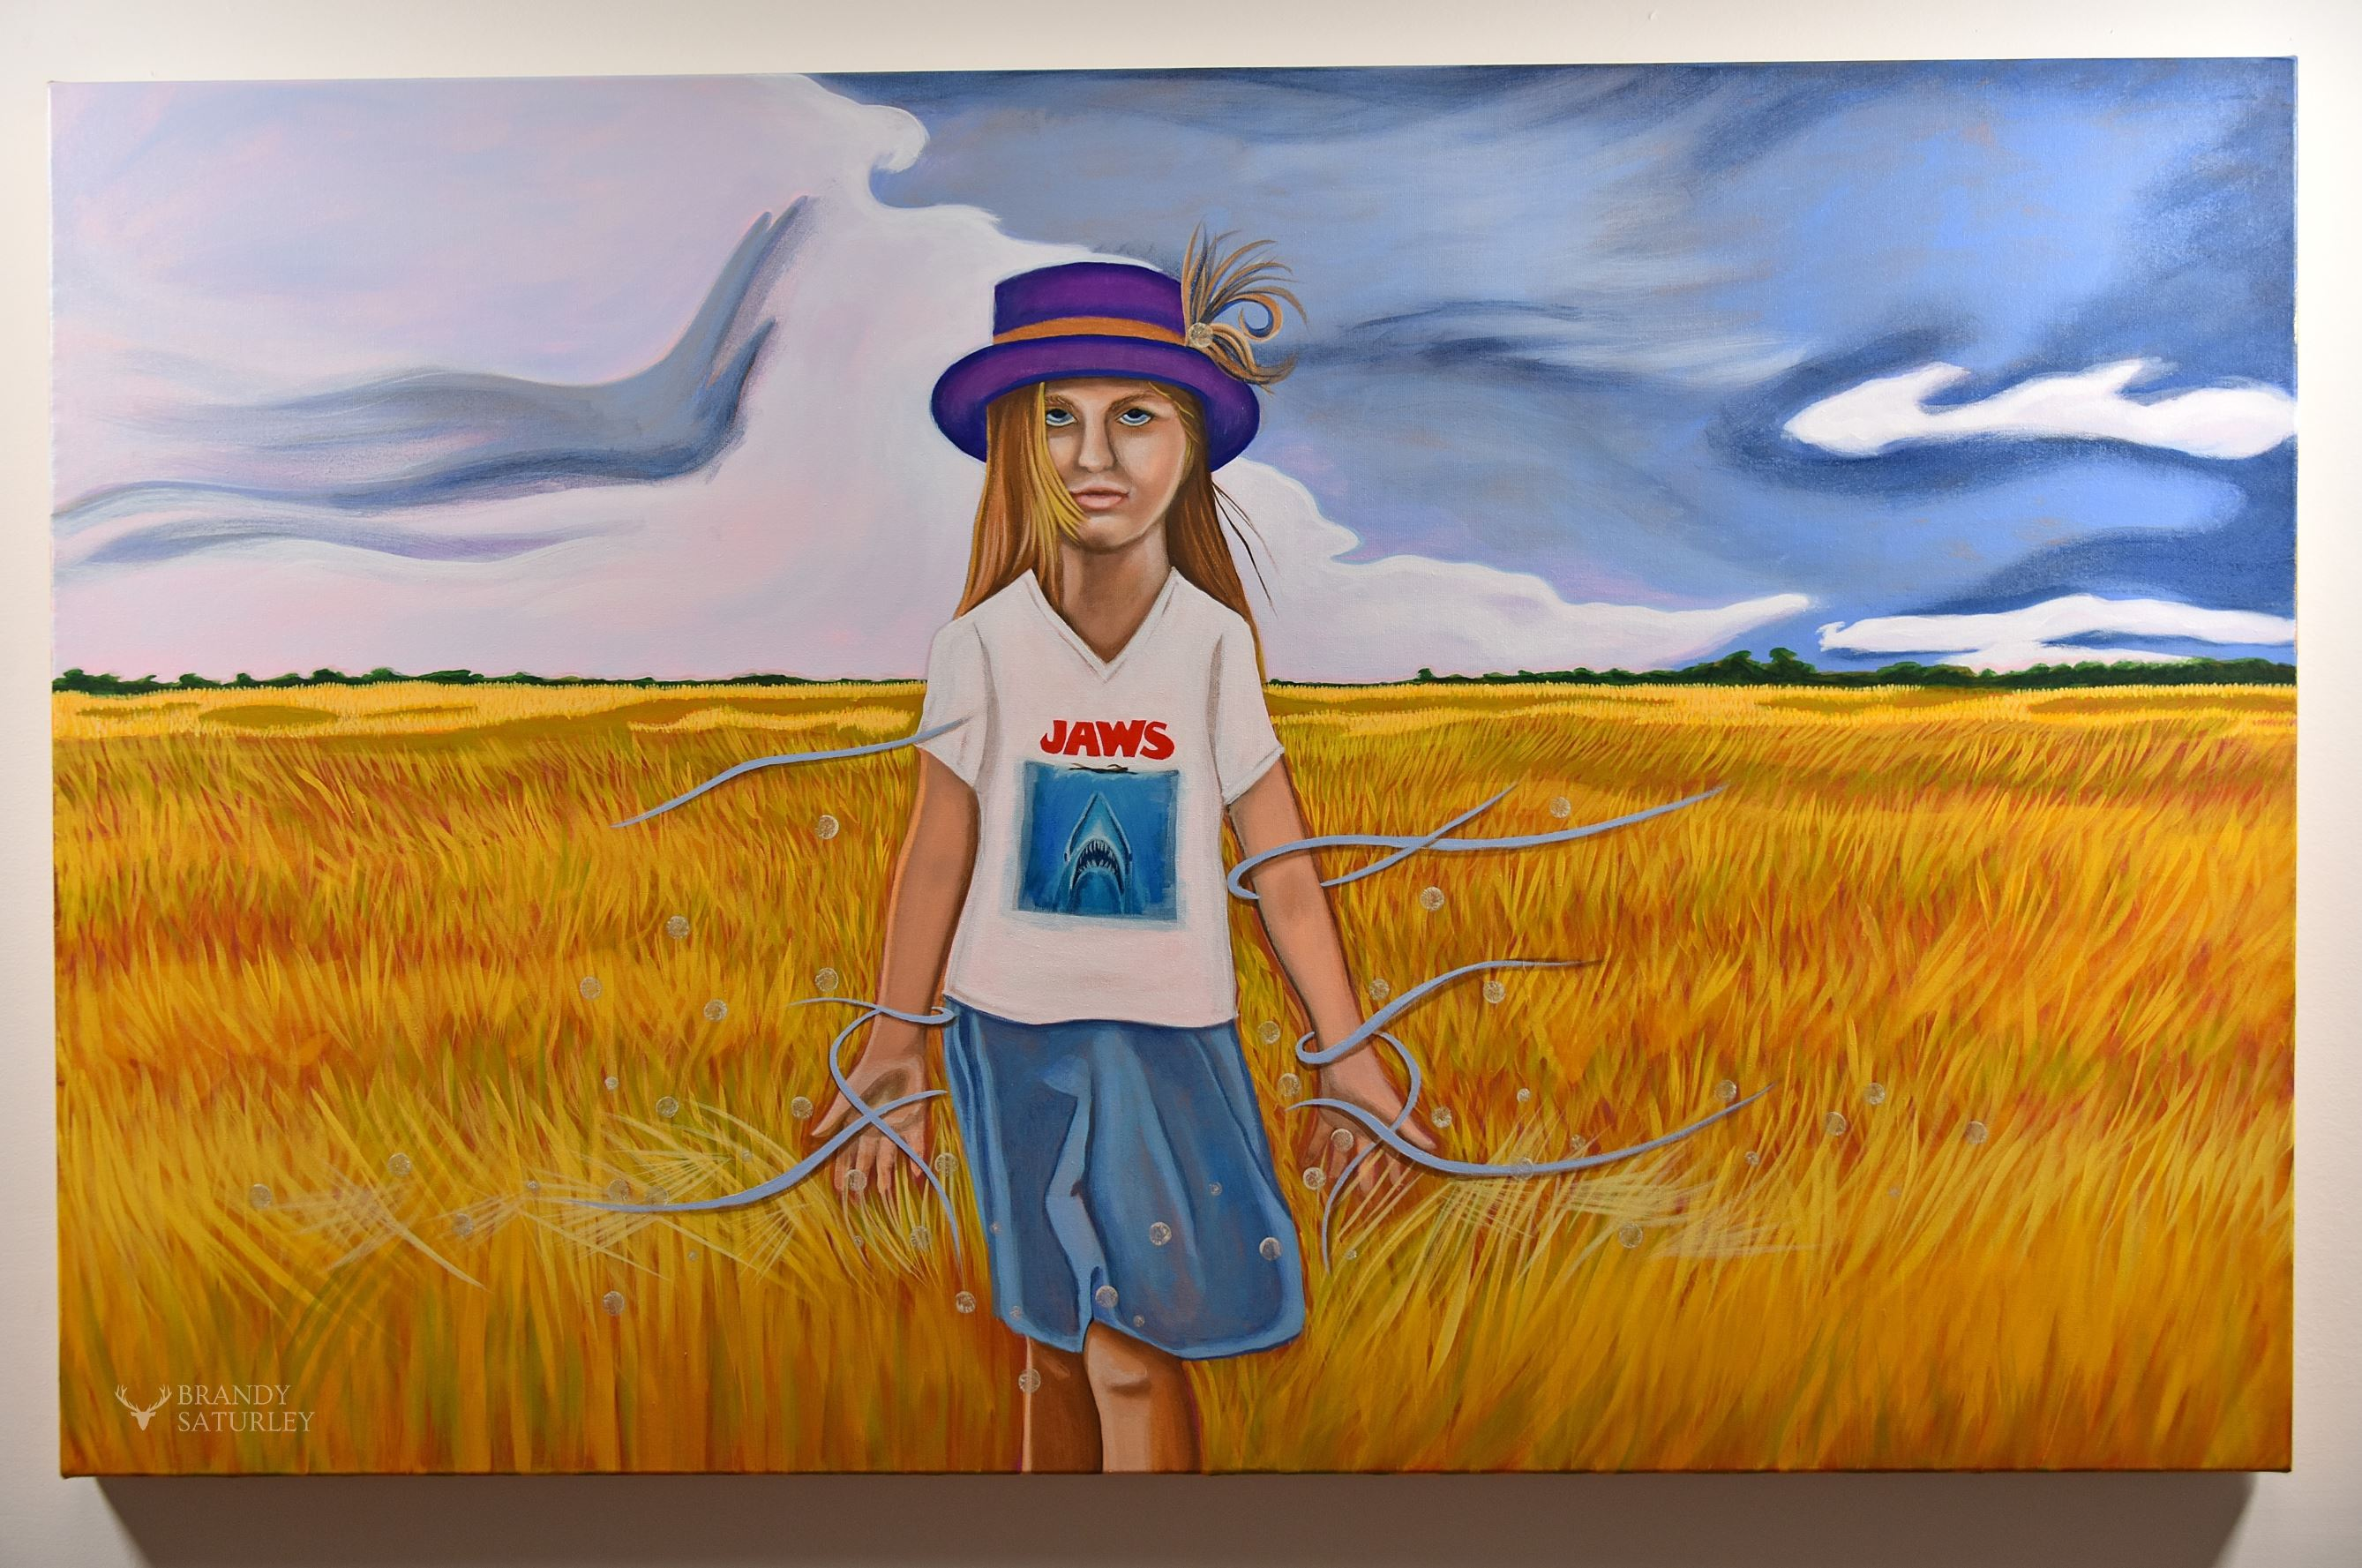 painting of girl wearing jaws t-shirt and purple hat walking through wheat fields Brandy Saturley